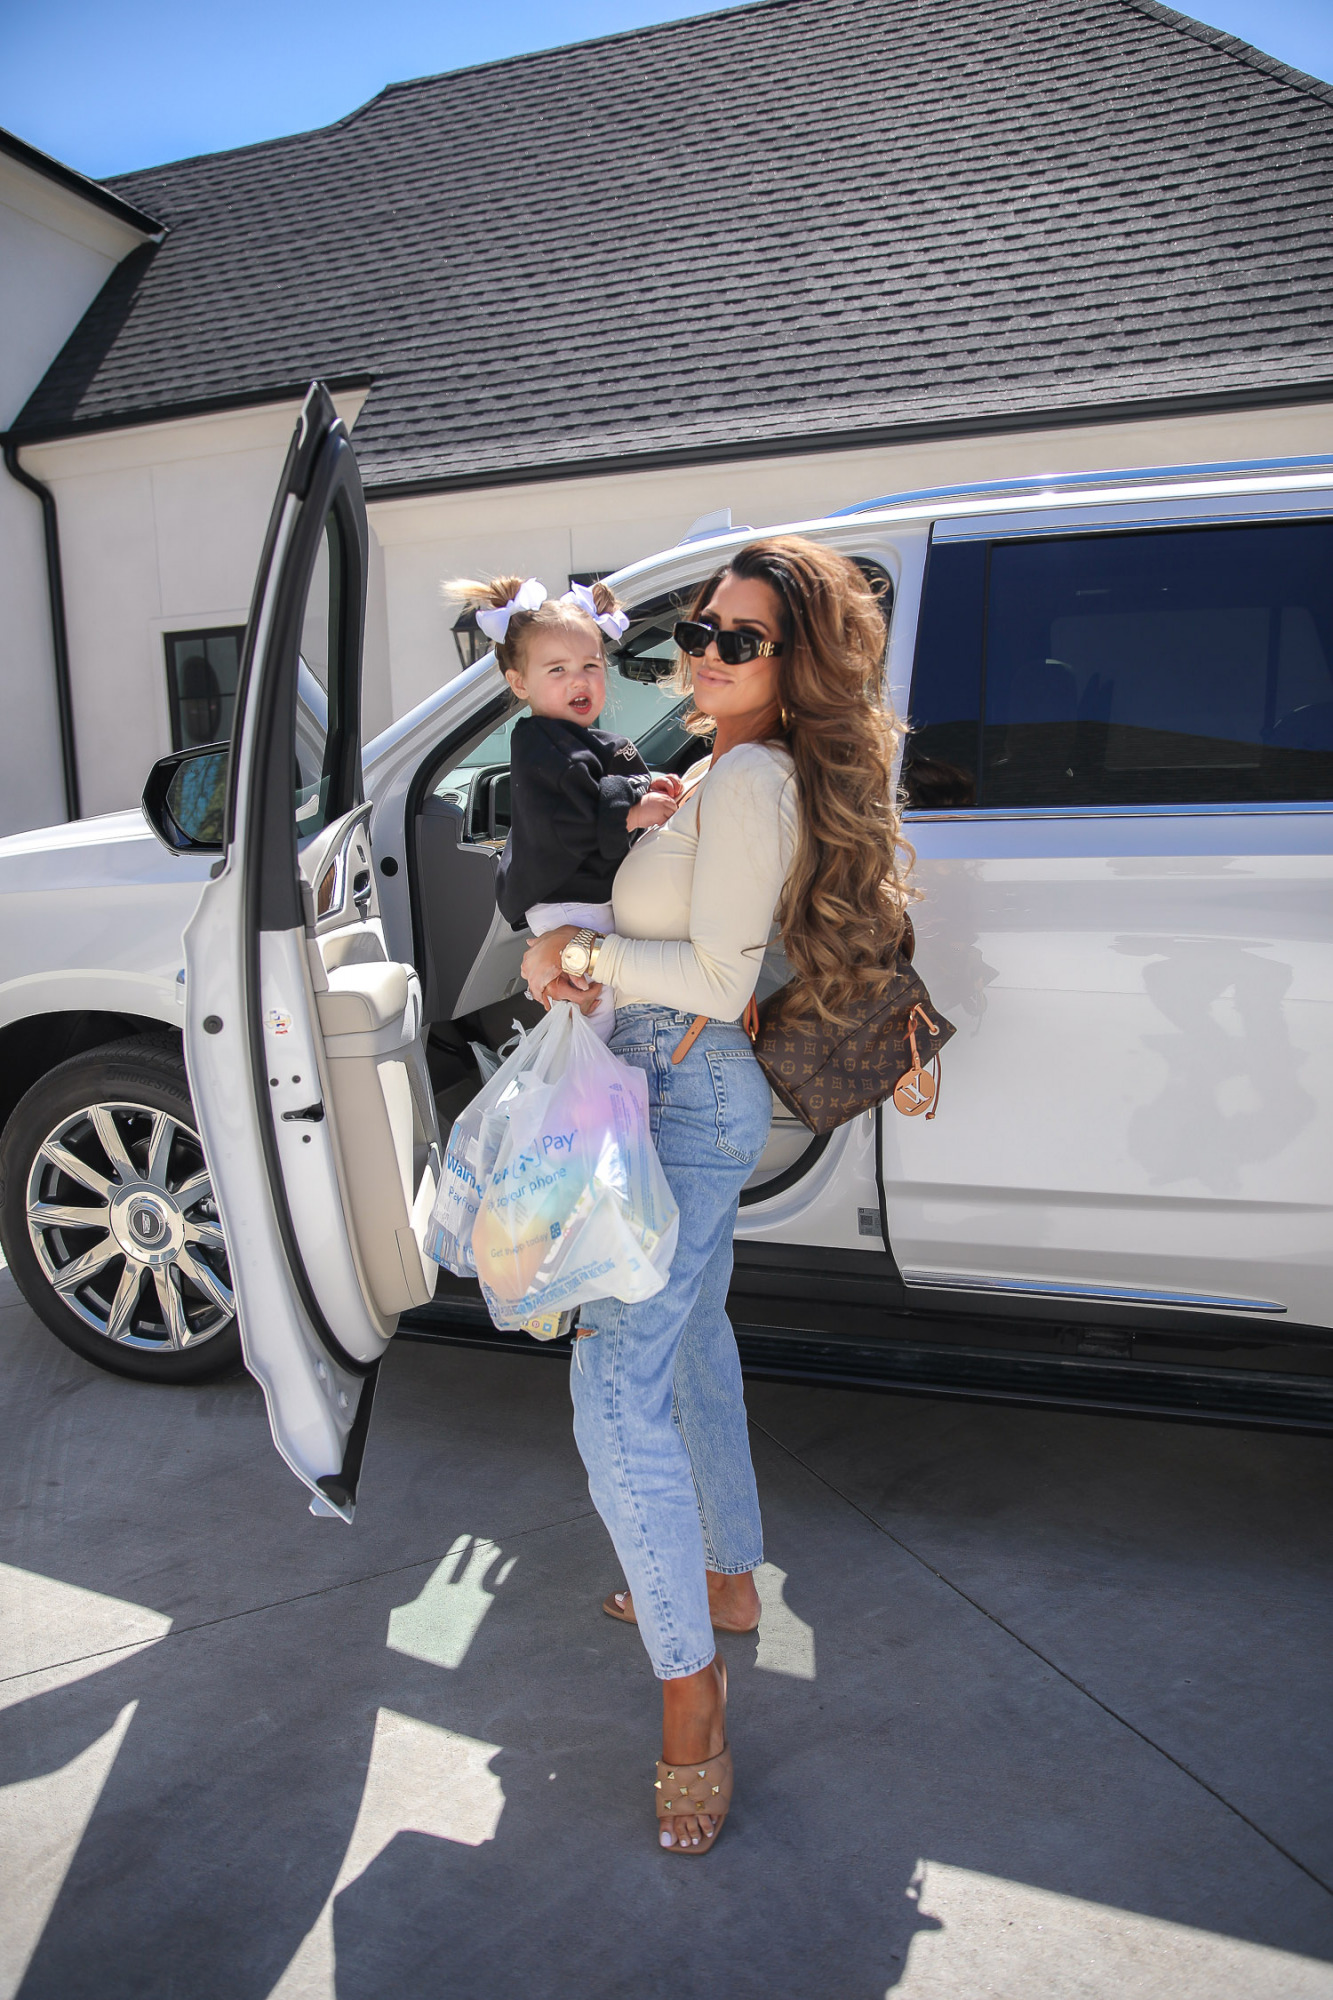 2021 escalade, best high waisted mom jeans, H&M mom jeans, Kell parker sandals, Balenciaga sunglasses, walmart delivery and pick up details, emily gemma-21 | Instagram Recap by popular US fashion blog, The Sweetest Thing: image of Emily Gemma holding her young daughter next to their white SUV and holding some Walmart shopping bags.